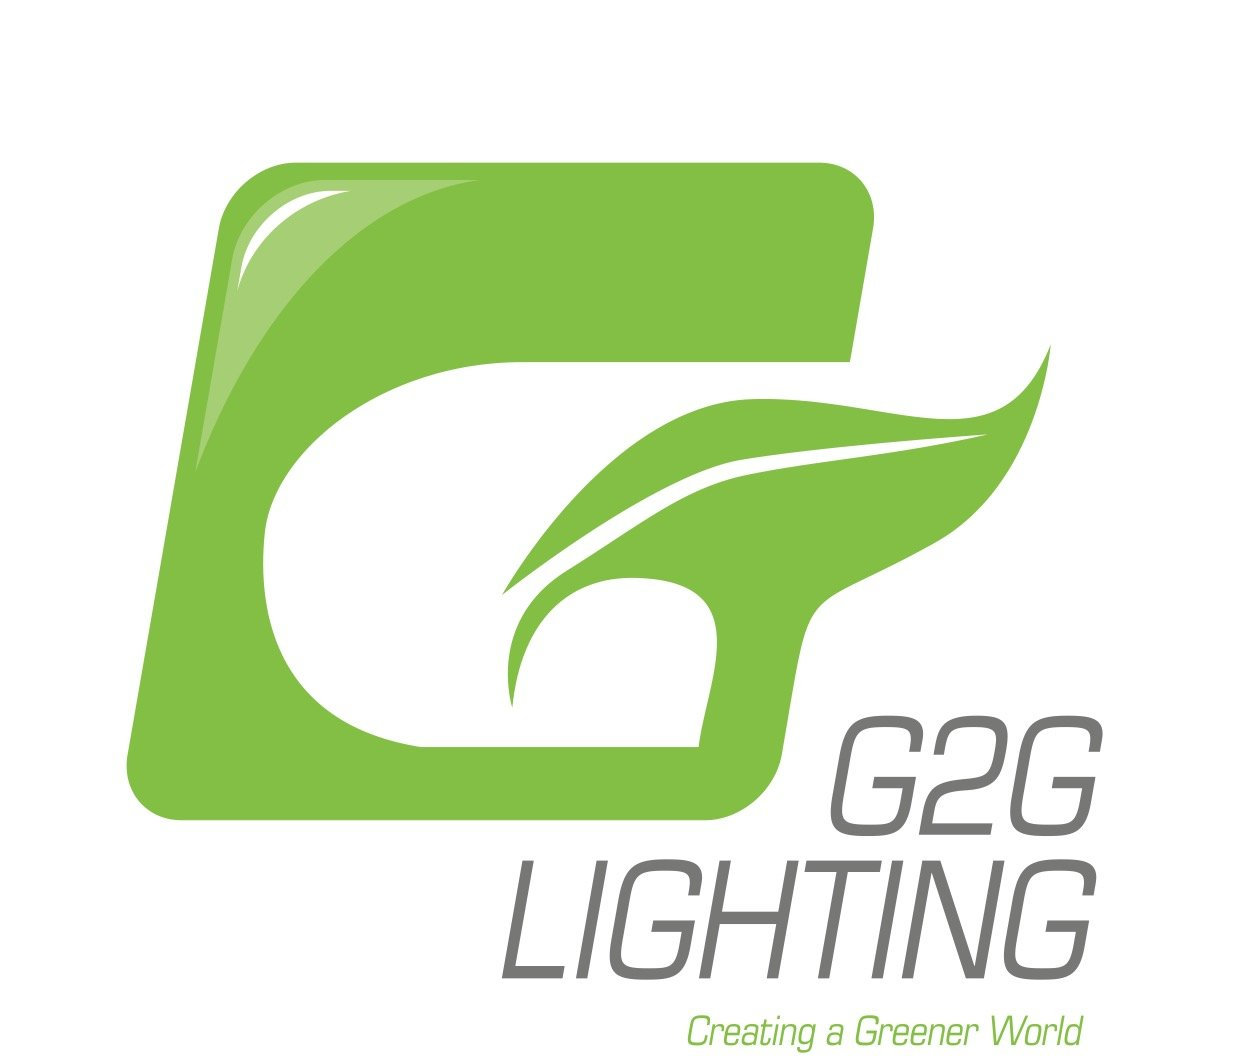 G2G Lighting